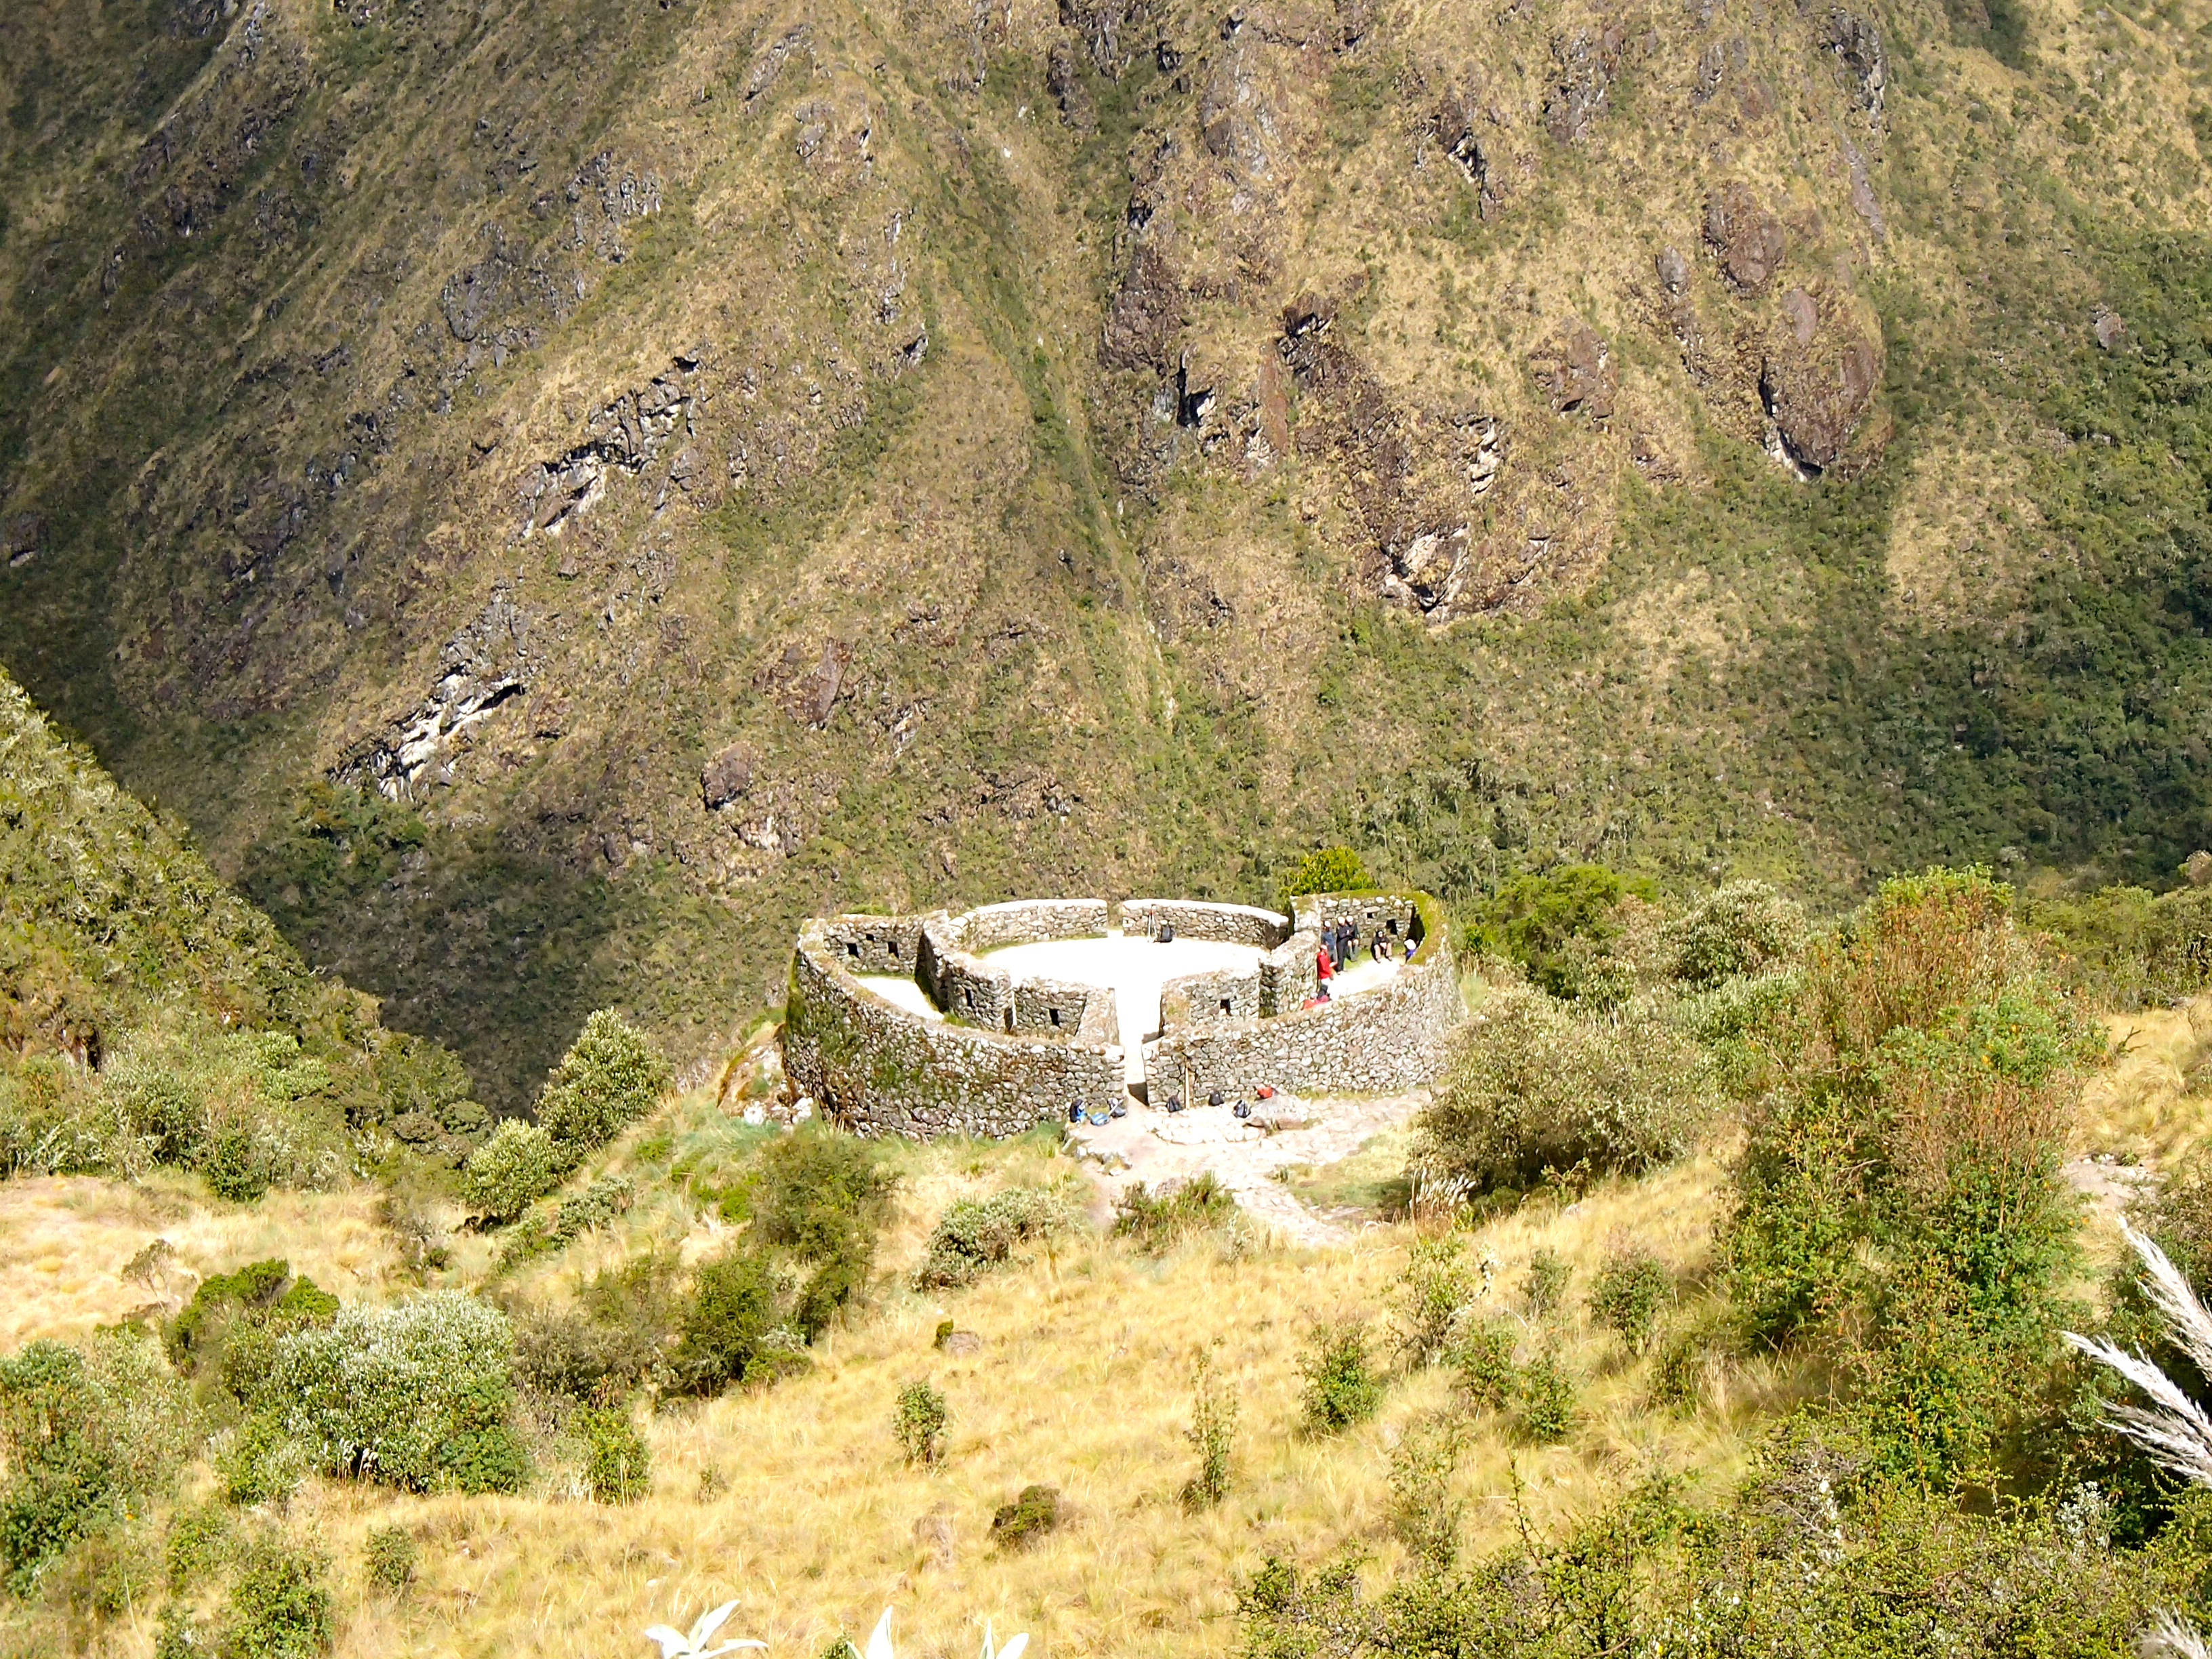 How do you hike to machu picchu in peru?